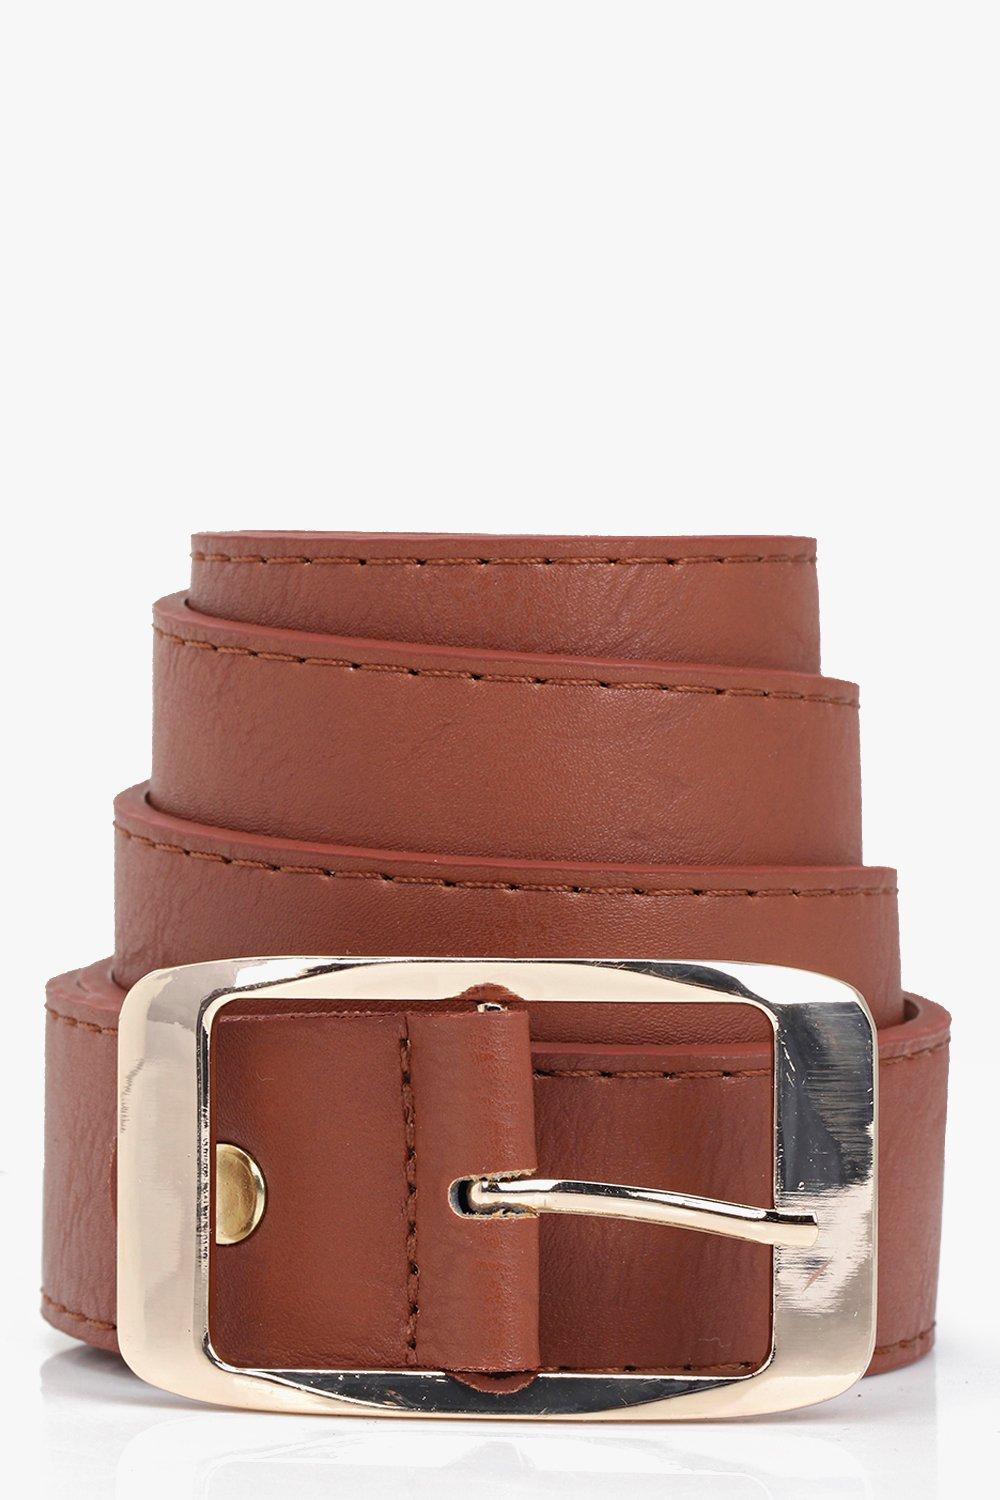 Chunky Boyfriend Belt - tan - Customise your outfi